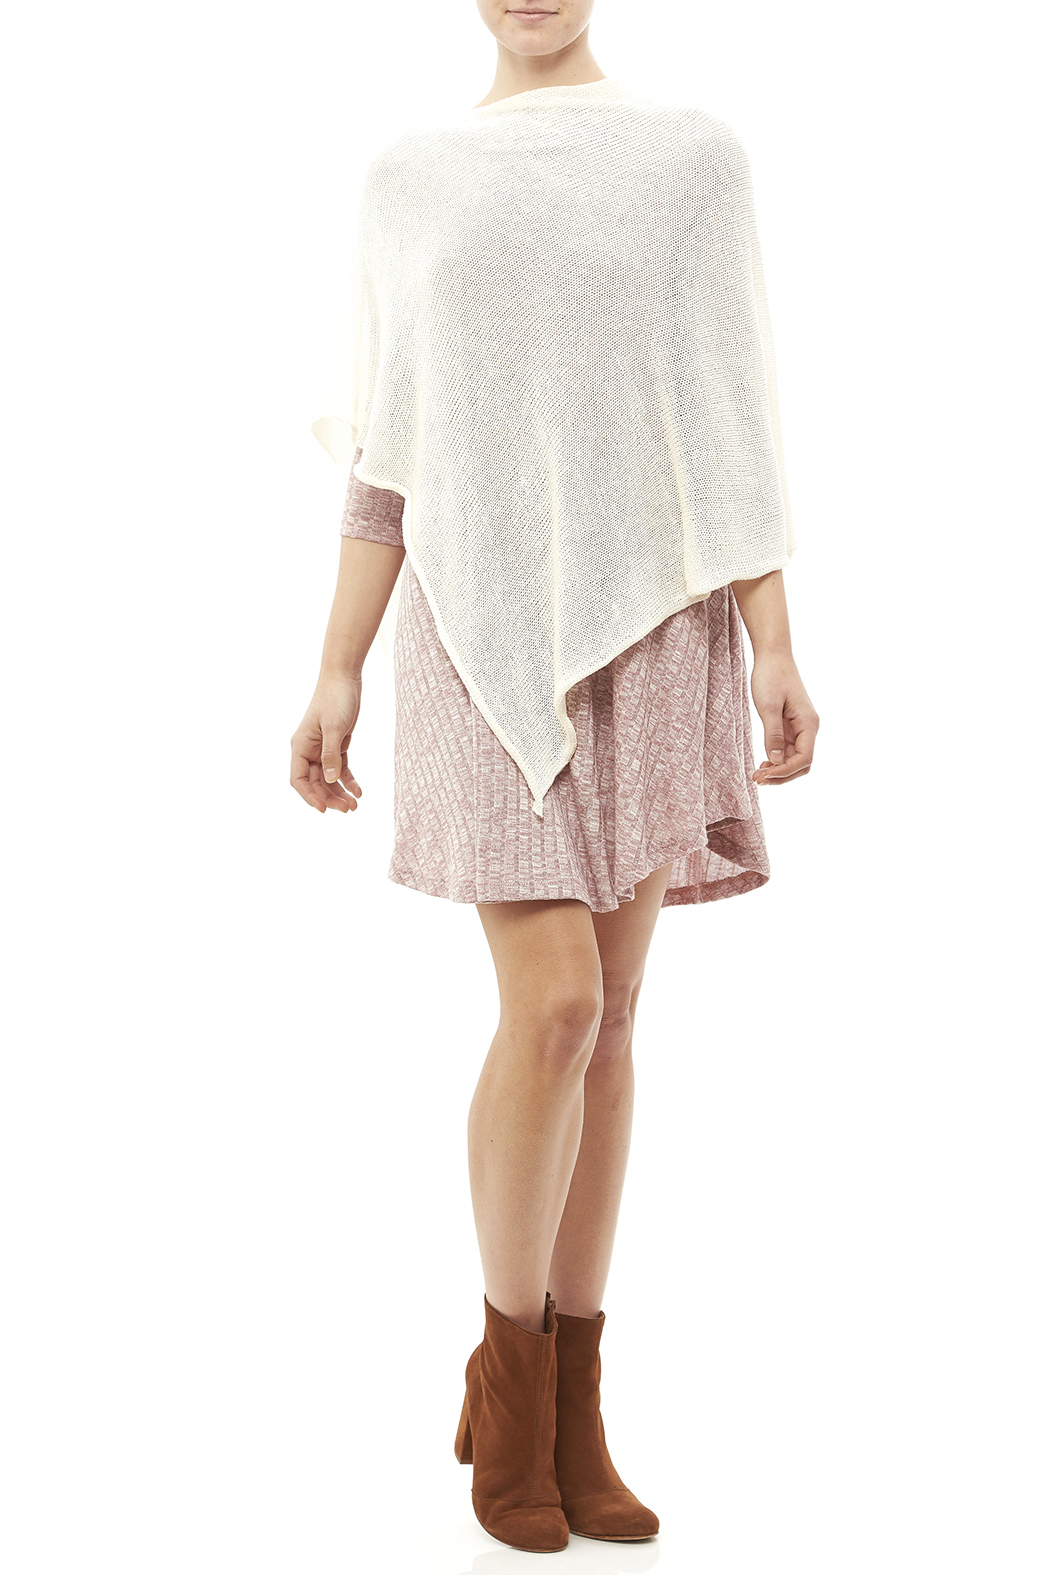 DC KNITS Rayon Sheen Poncho - Front Full Image